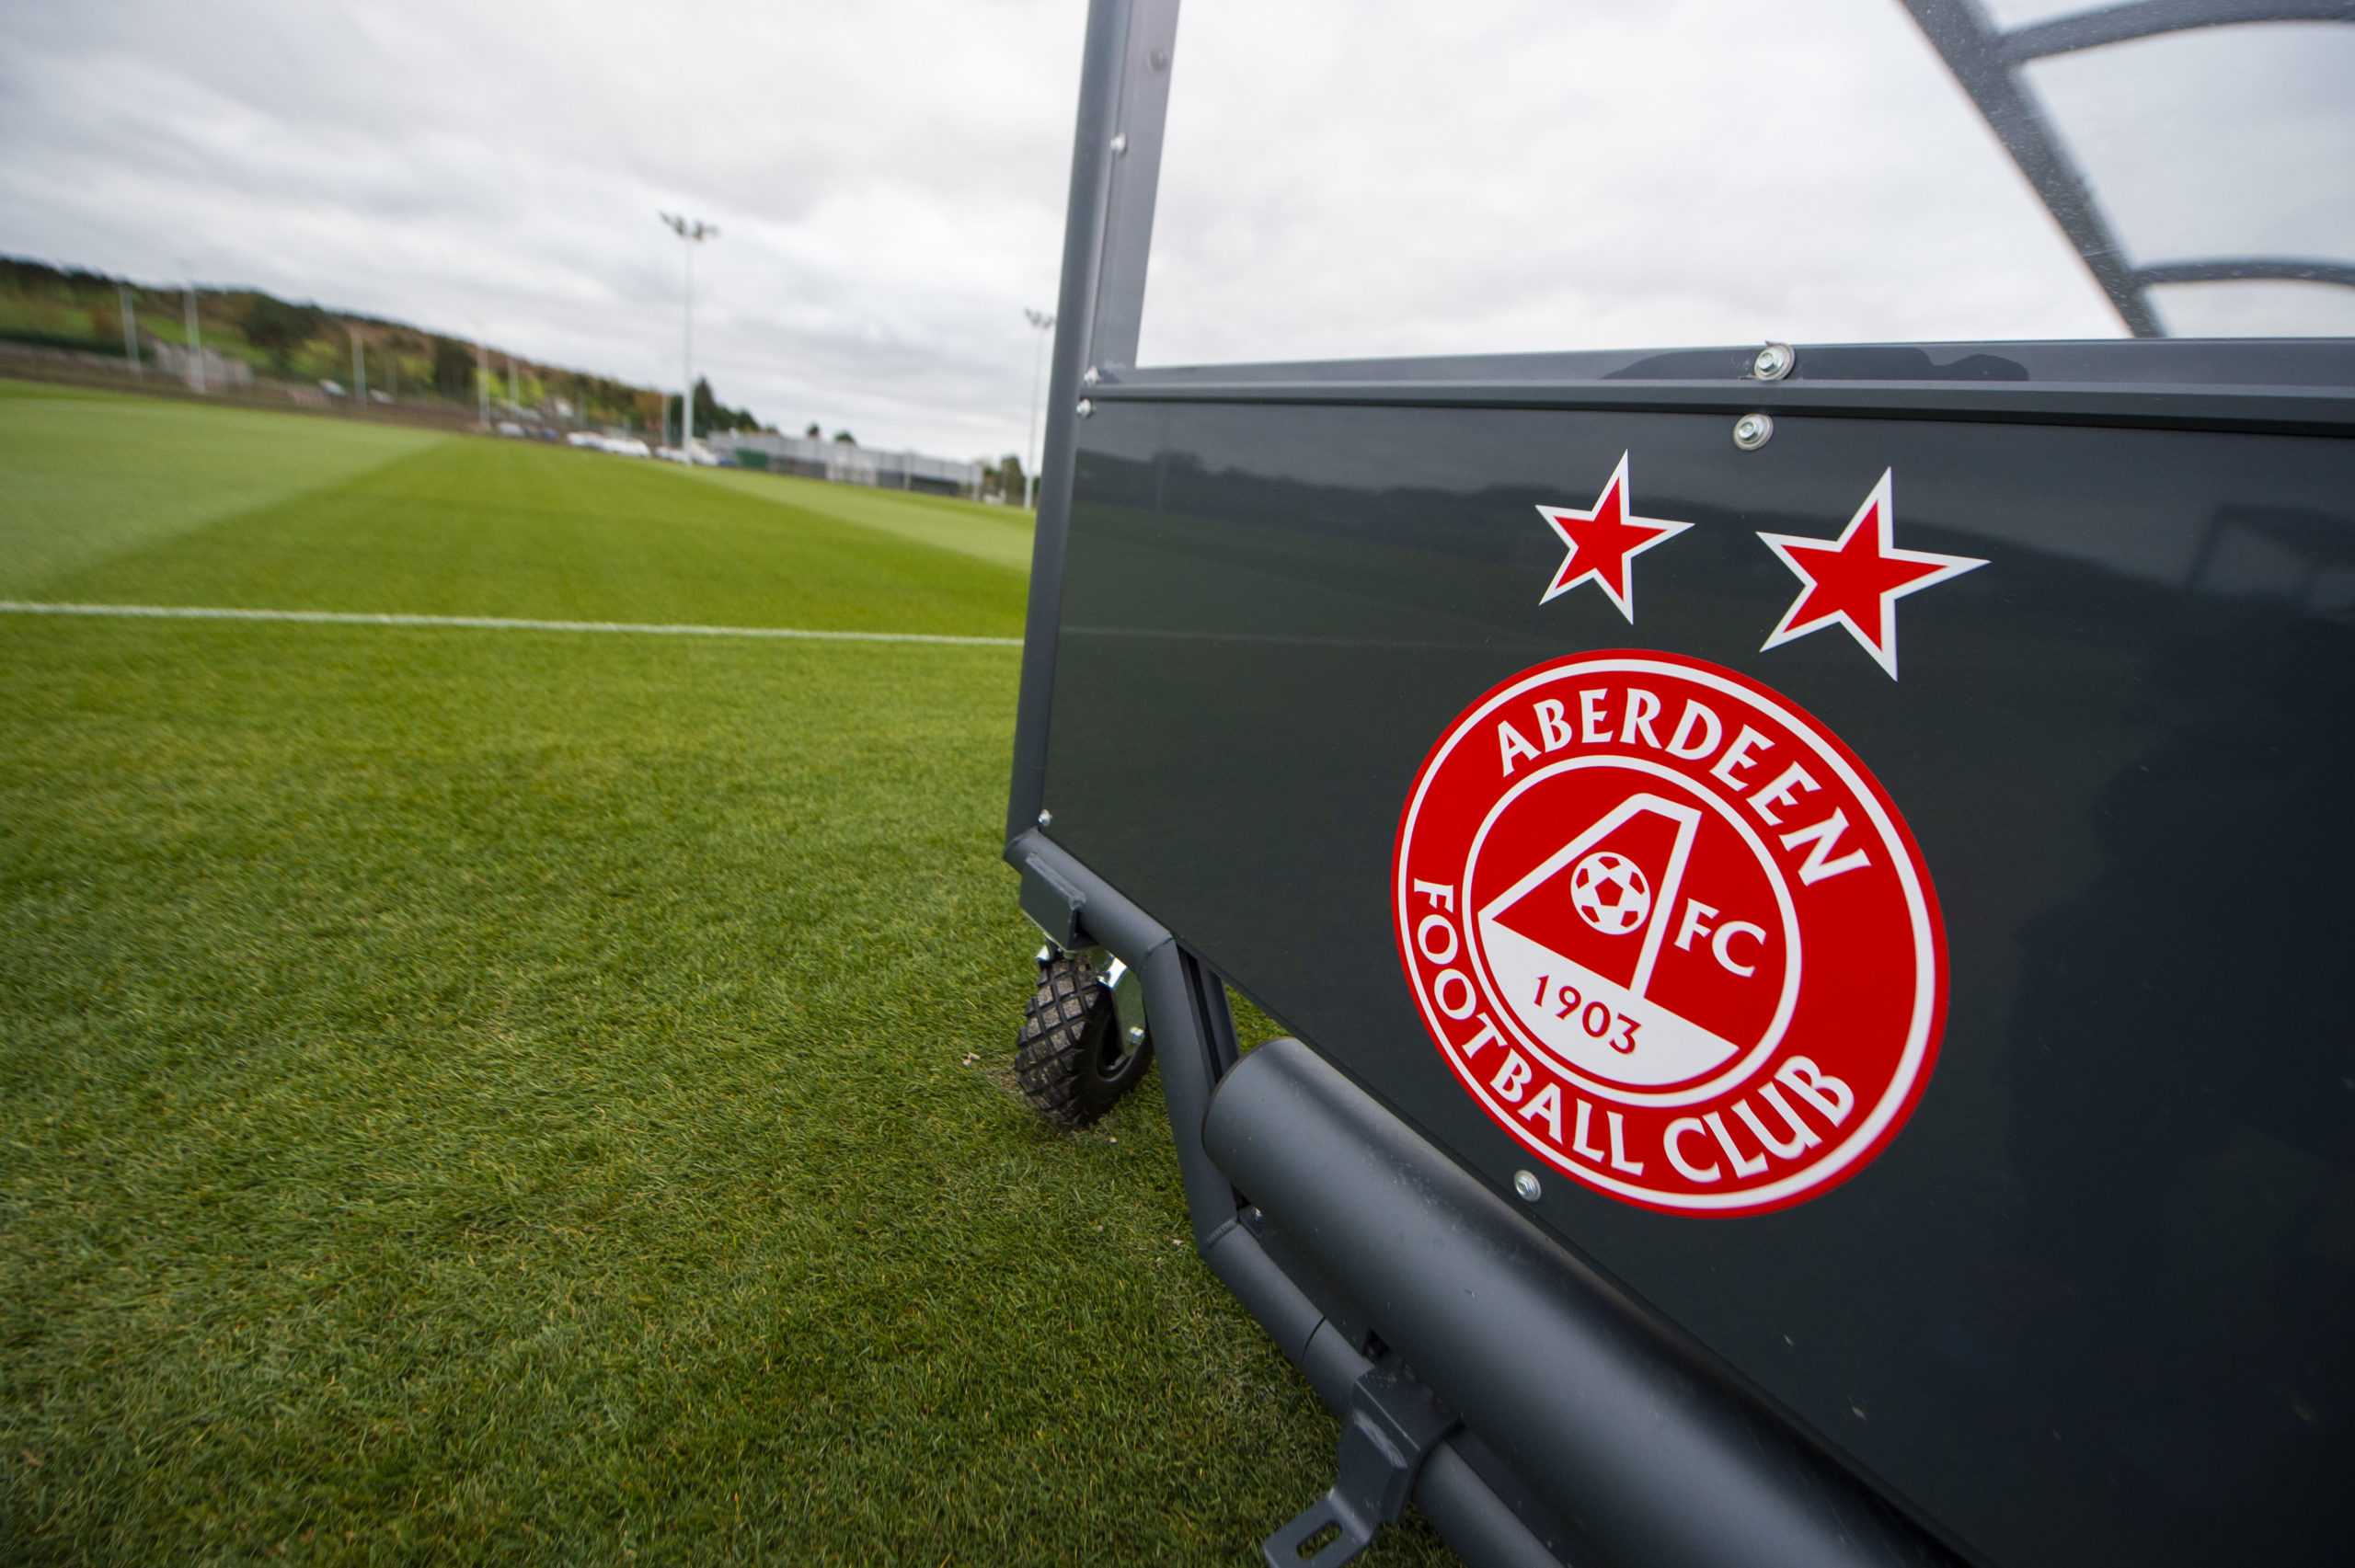 Two Aberdeen players have tested positive for Covid-19